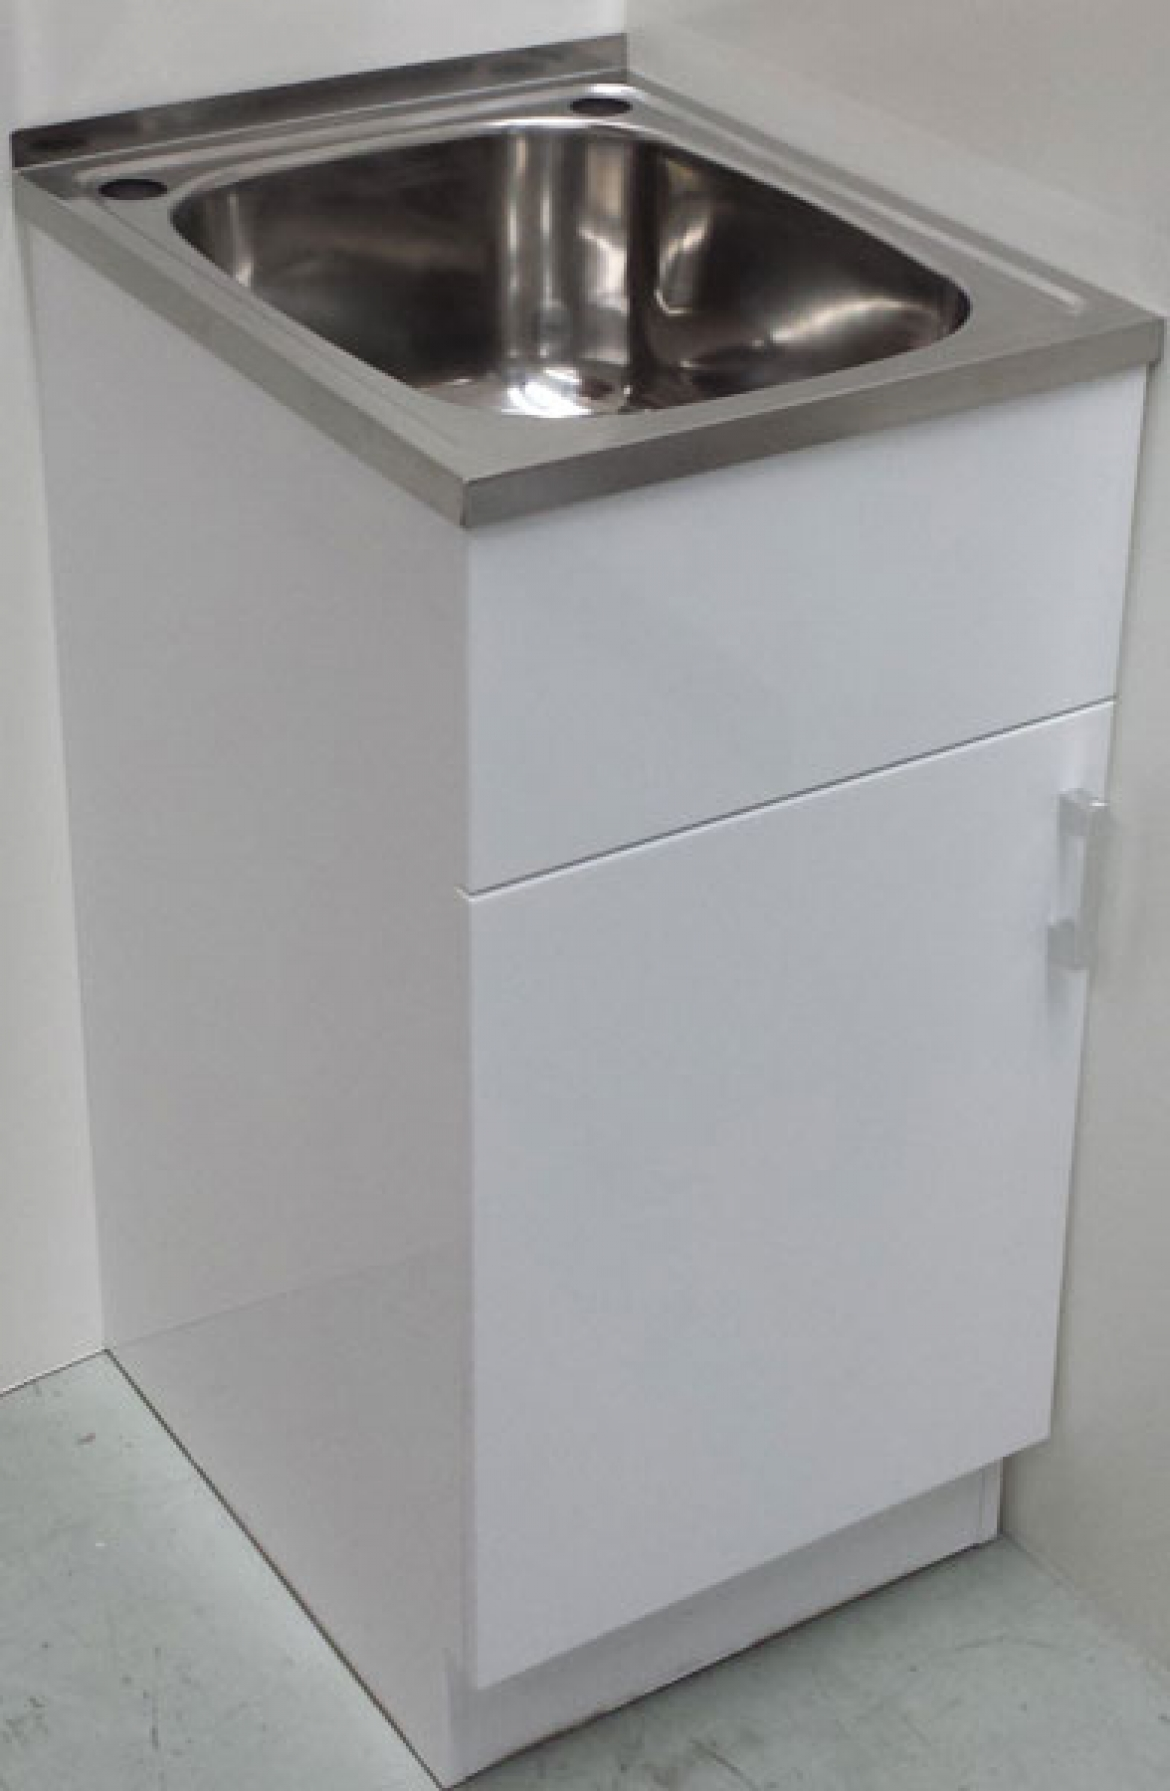 35L laundry sink with cabinet  1 door